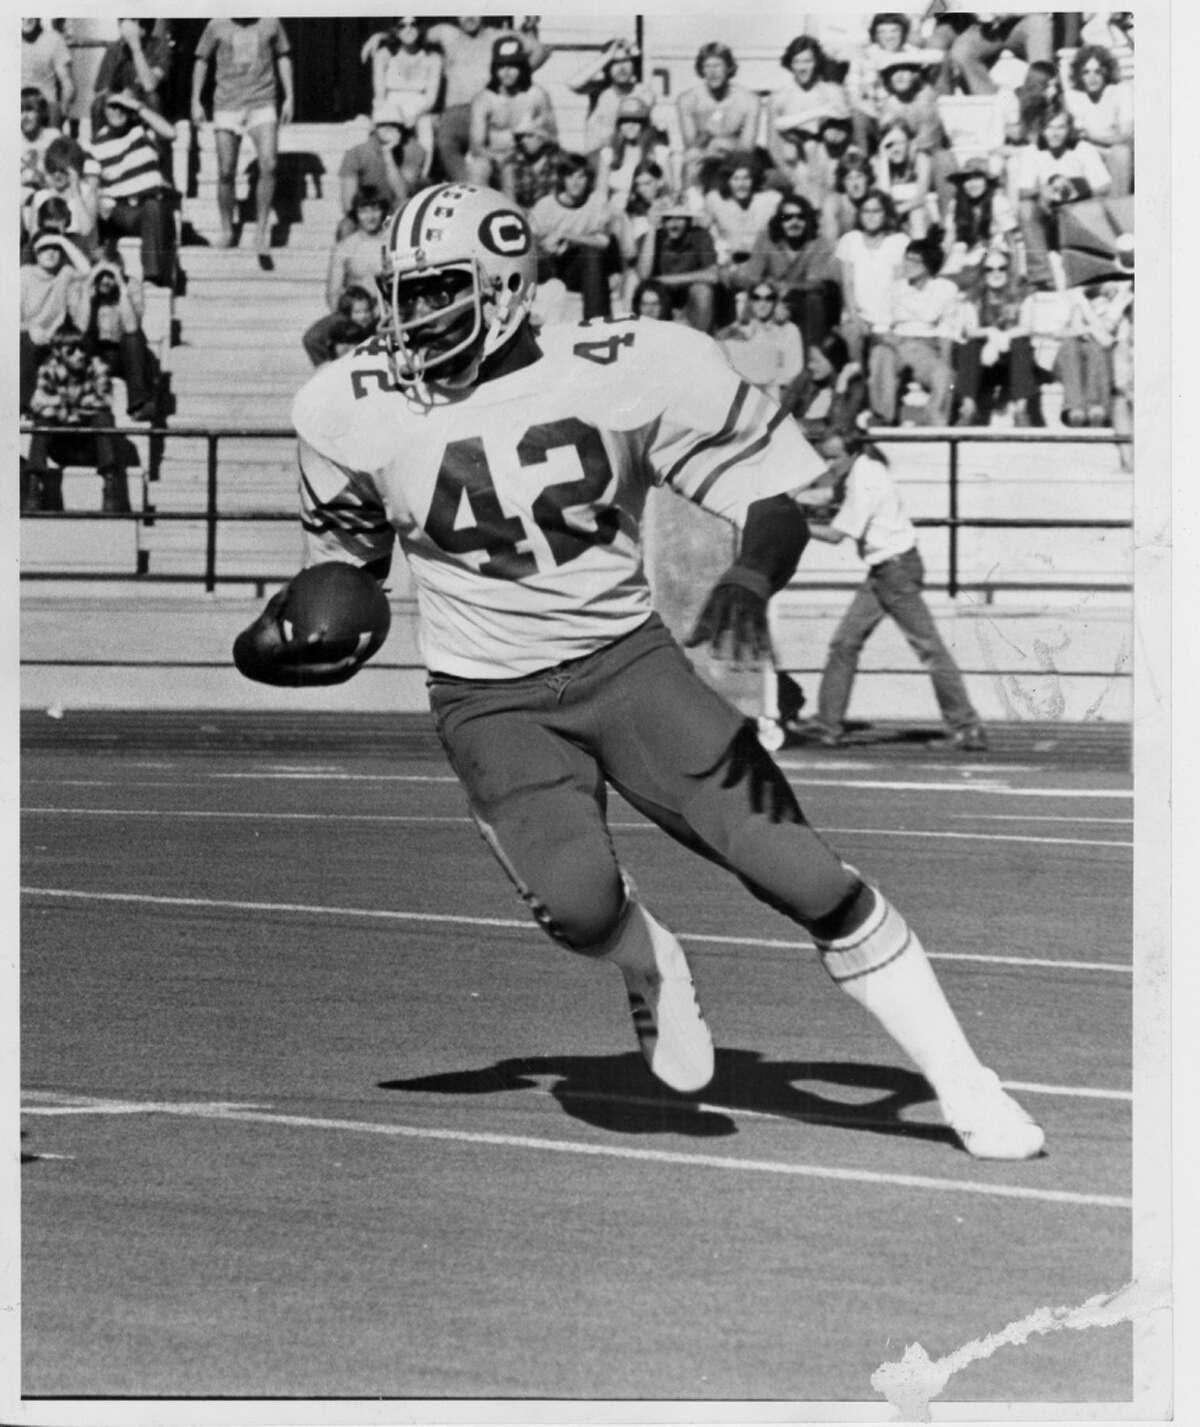 Chuck Muncie ran for four TDs in the 1975 Big Game.